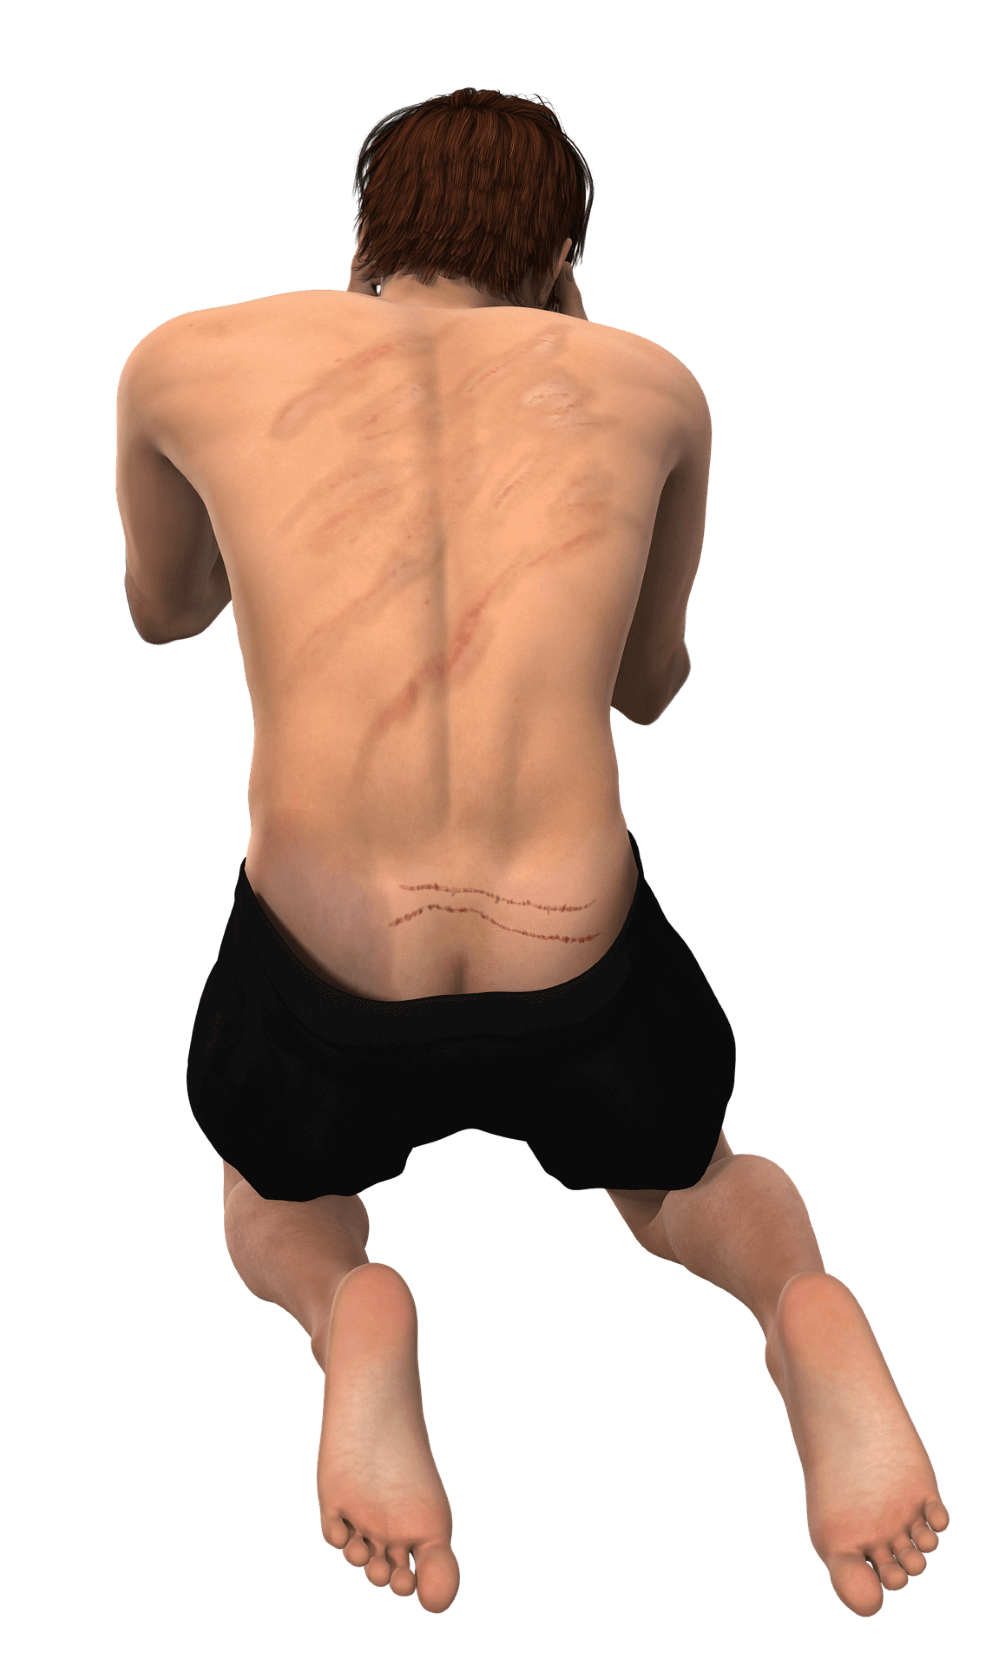 bruses on the man's back